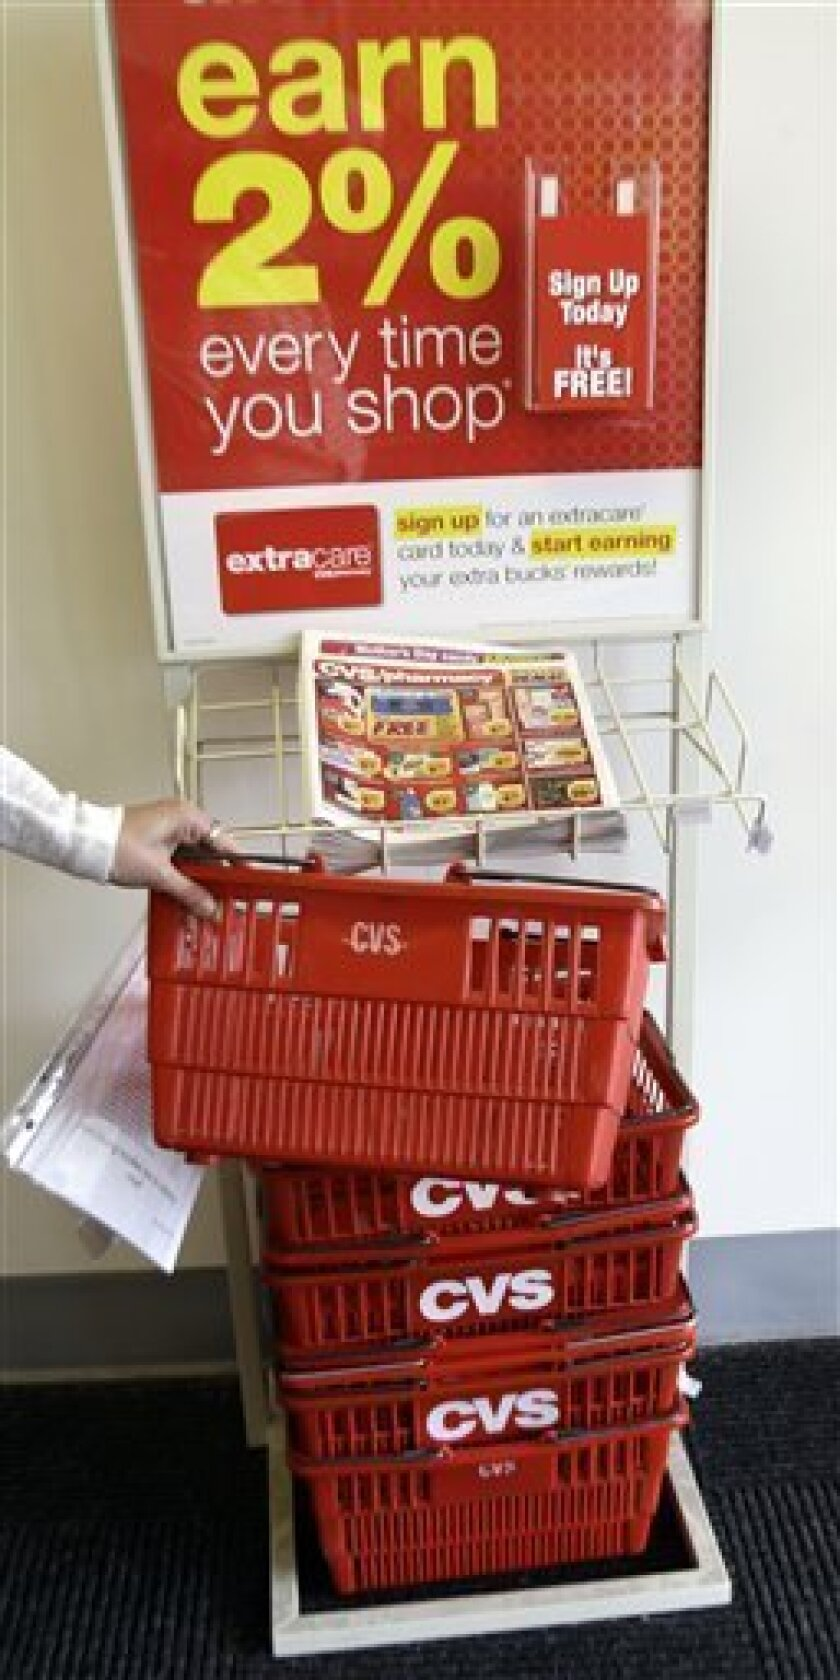 FILE - In this May 3, 2010 file photo, a shopper picks up a basket at a CVS store in Brunswick, Maine. CVS Caremark said Wednesday, Nov. 3, 2010, its profit fell 20 percent in the third-quarter as its pharmacy benefit unit continued losing business. (AP Photo/Pat Wellenbach)